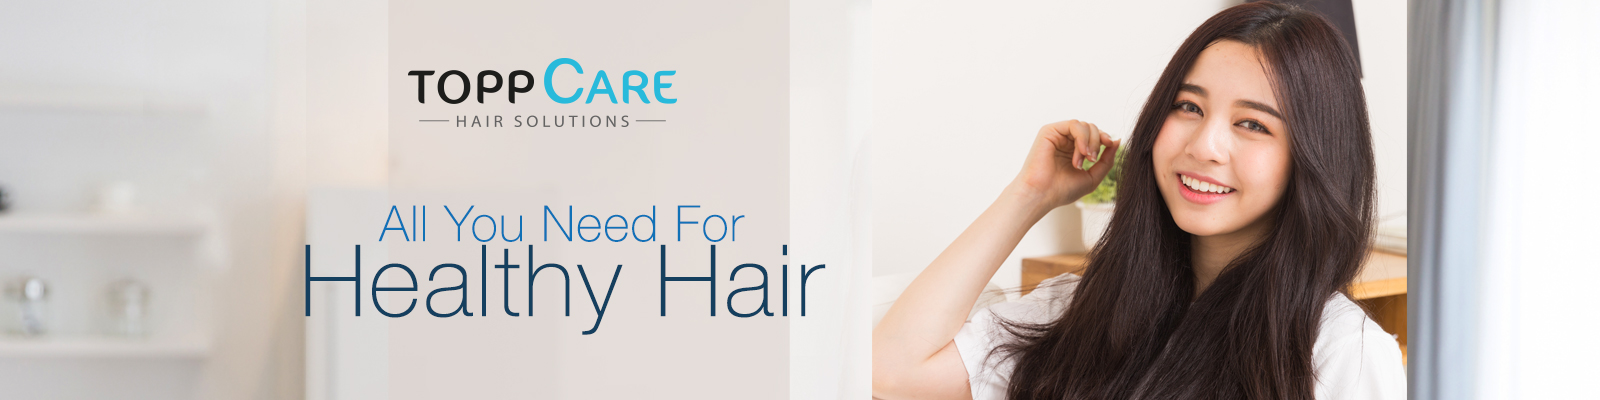 Achieve Healthy Hair with Topp Care